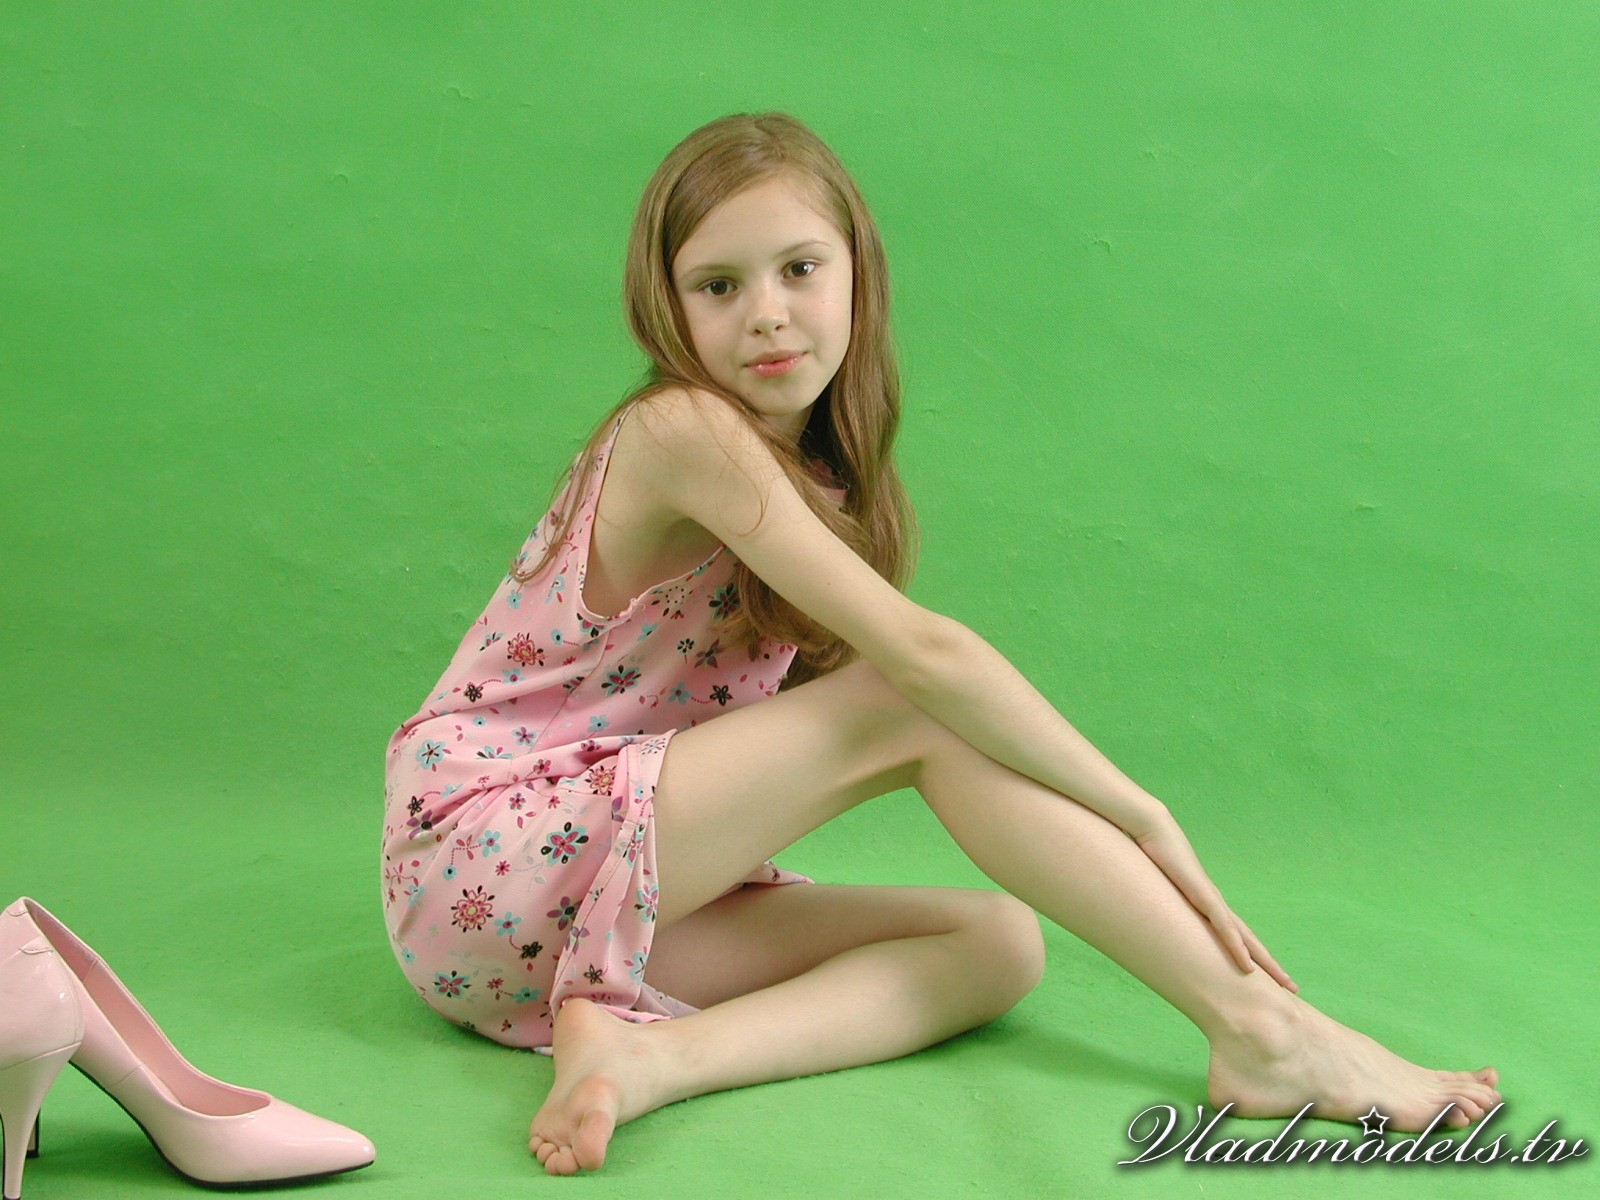 Images Of Vladmodels Child And Preteen Russian Models.